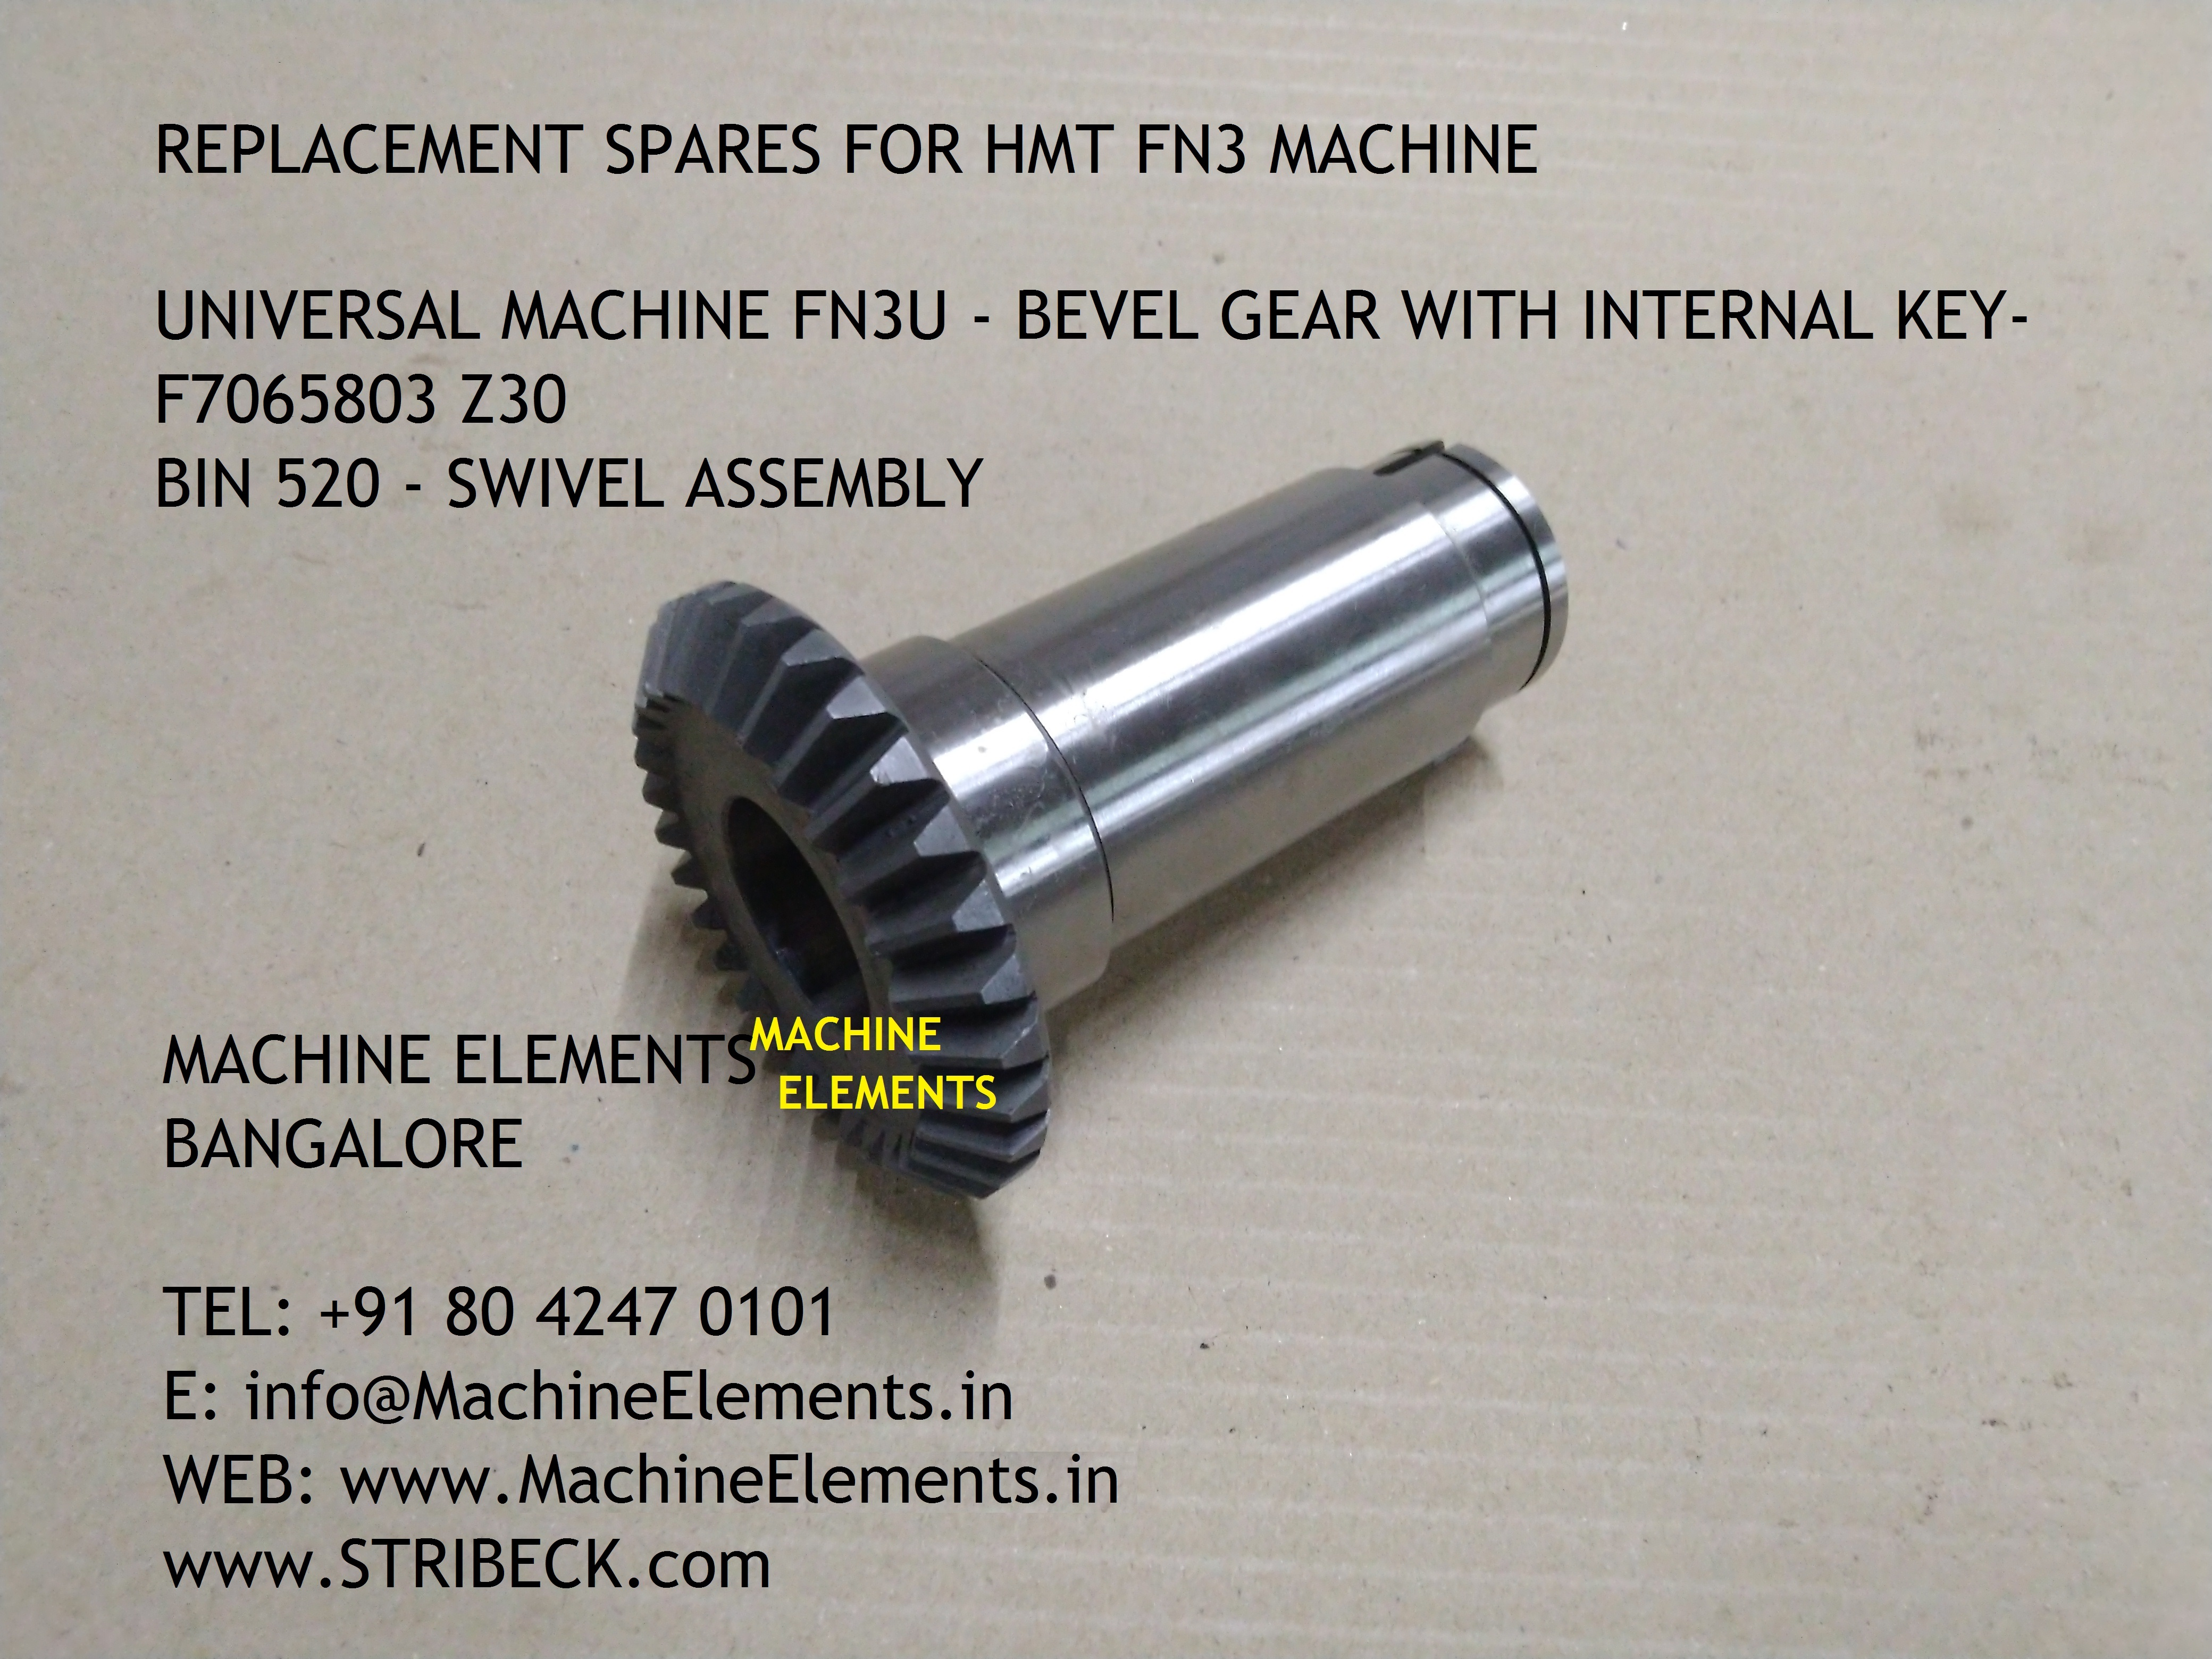 FN3U - BEVEL GEAR WITH KEY - F7065803 Z3